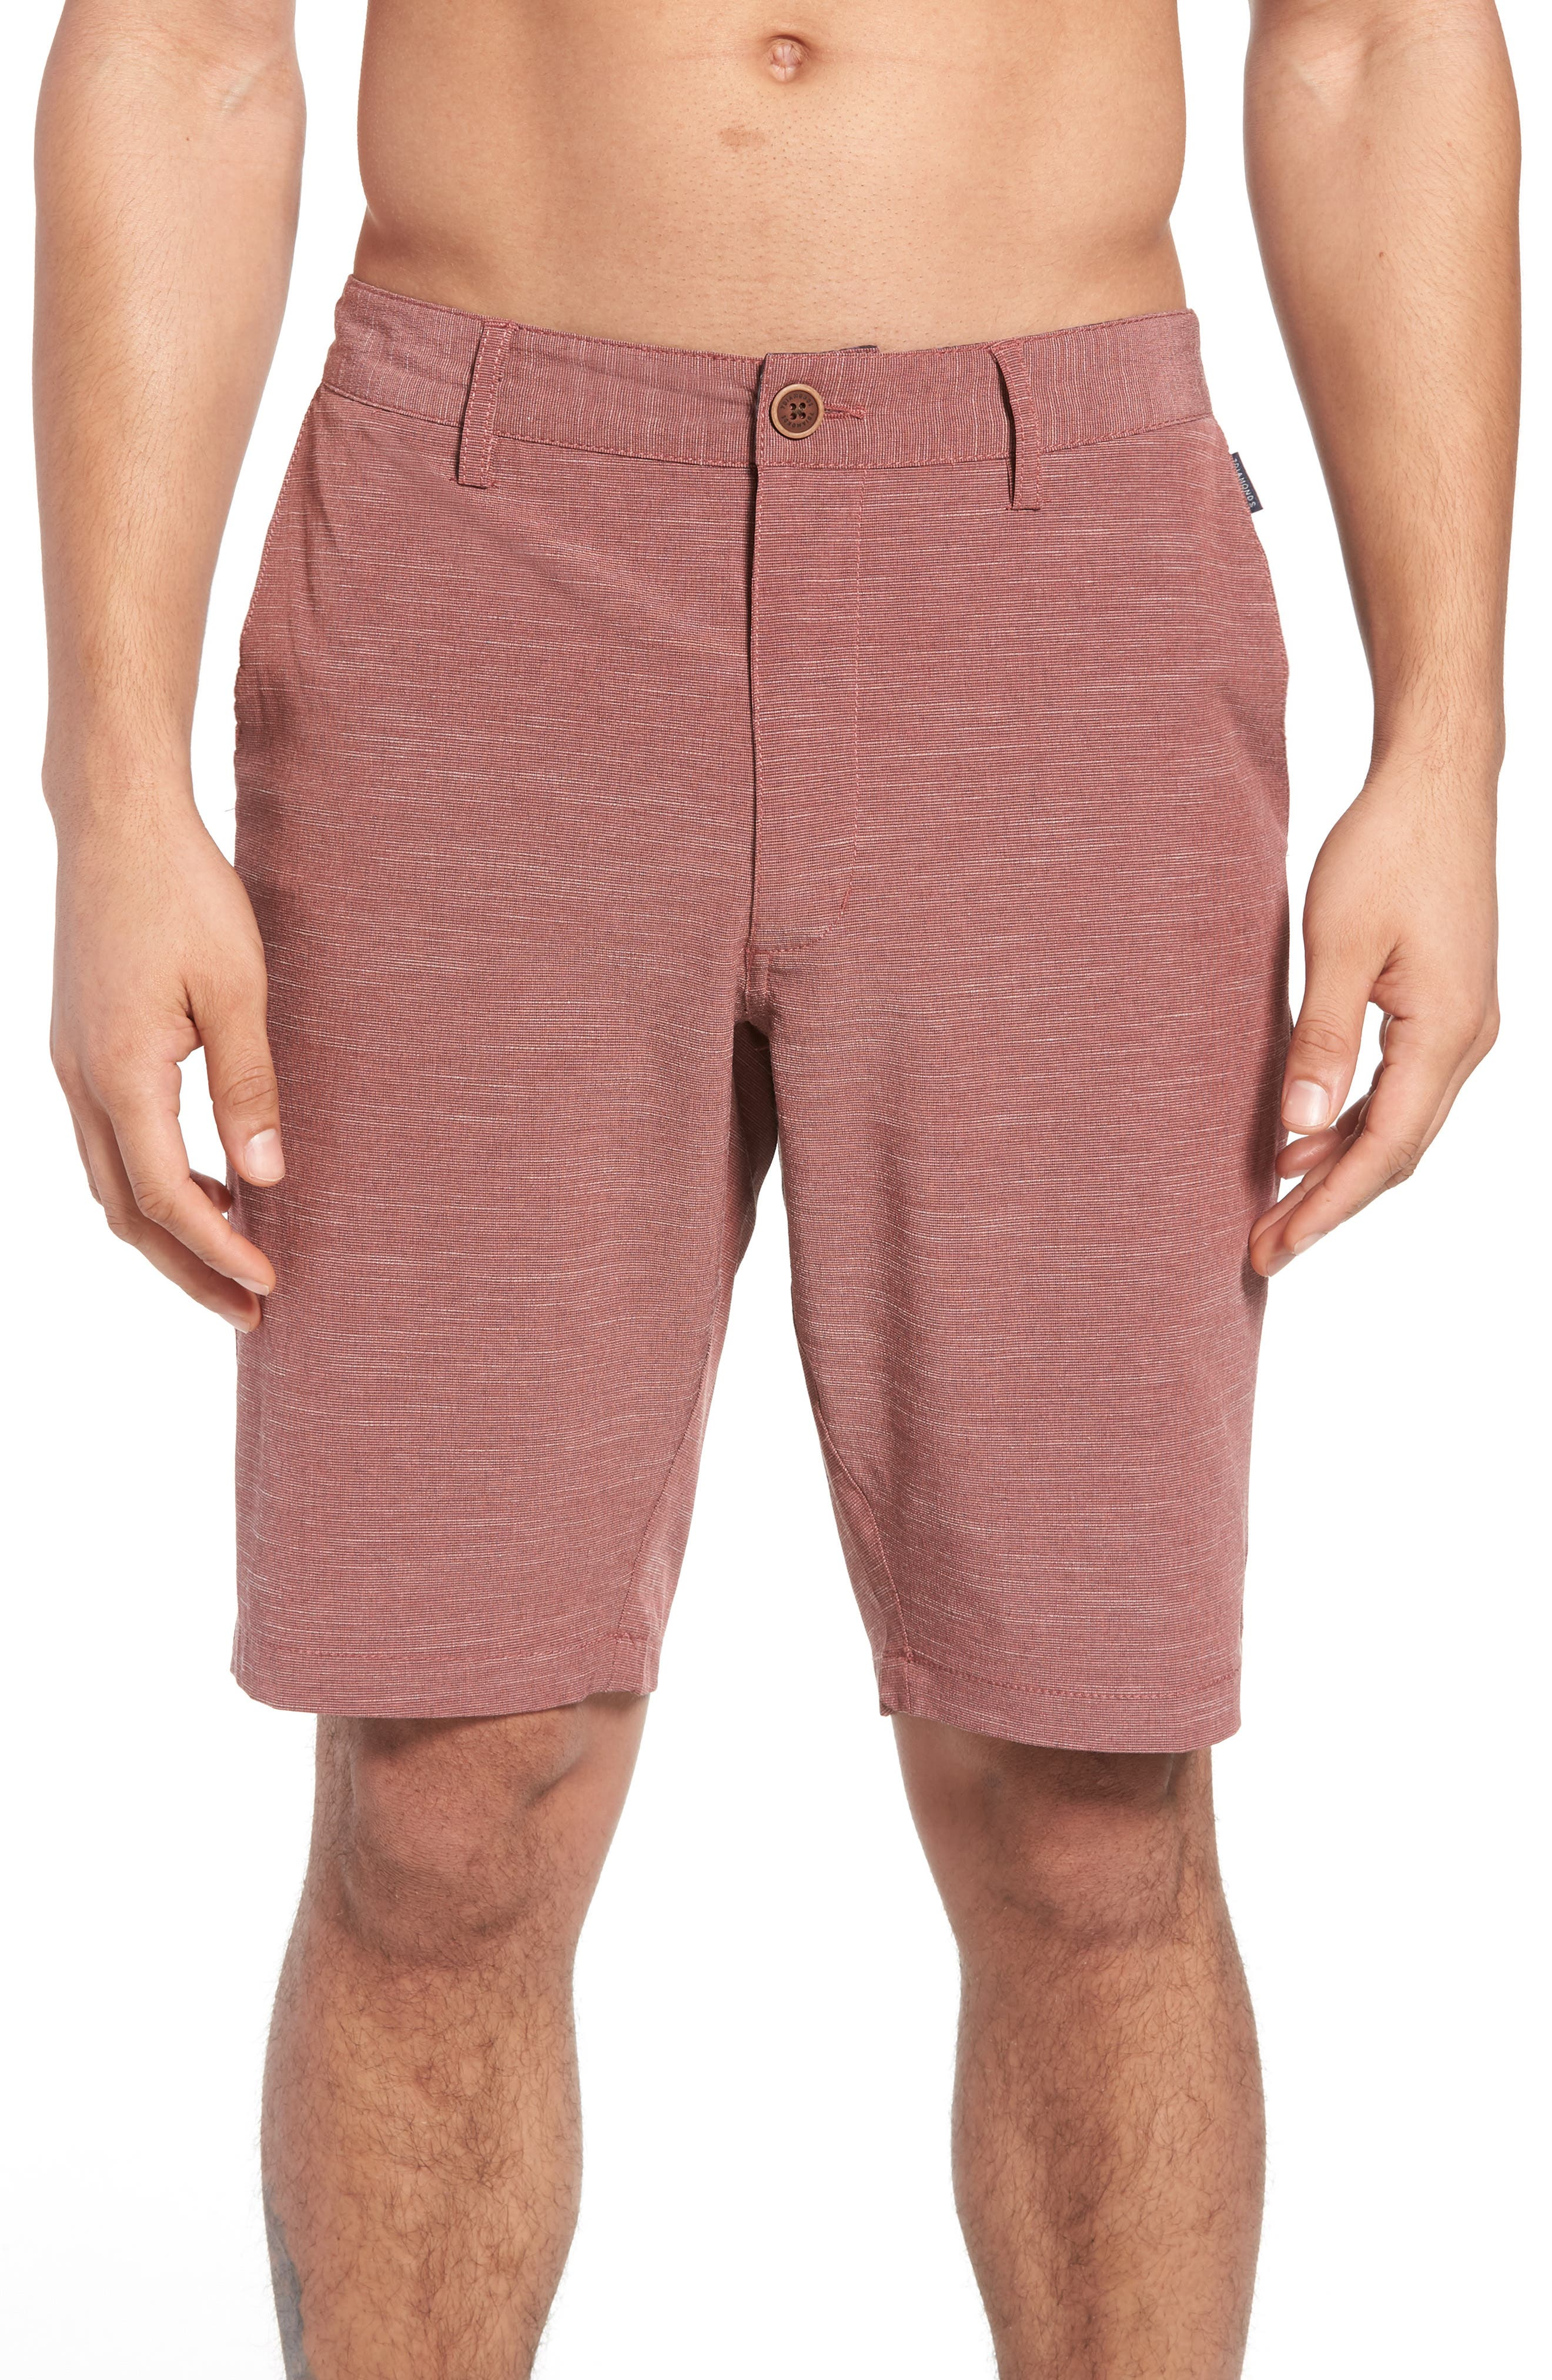 Existence Stretch Shorts,                             Alternate thumbnail 16, color,